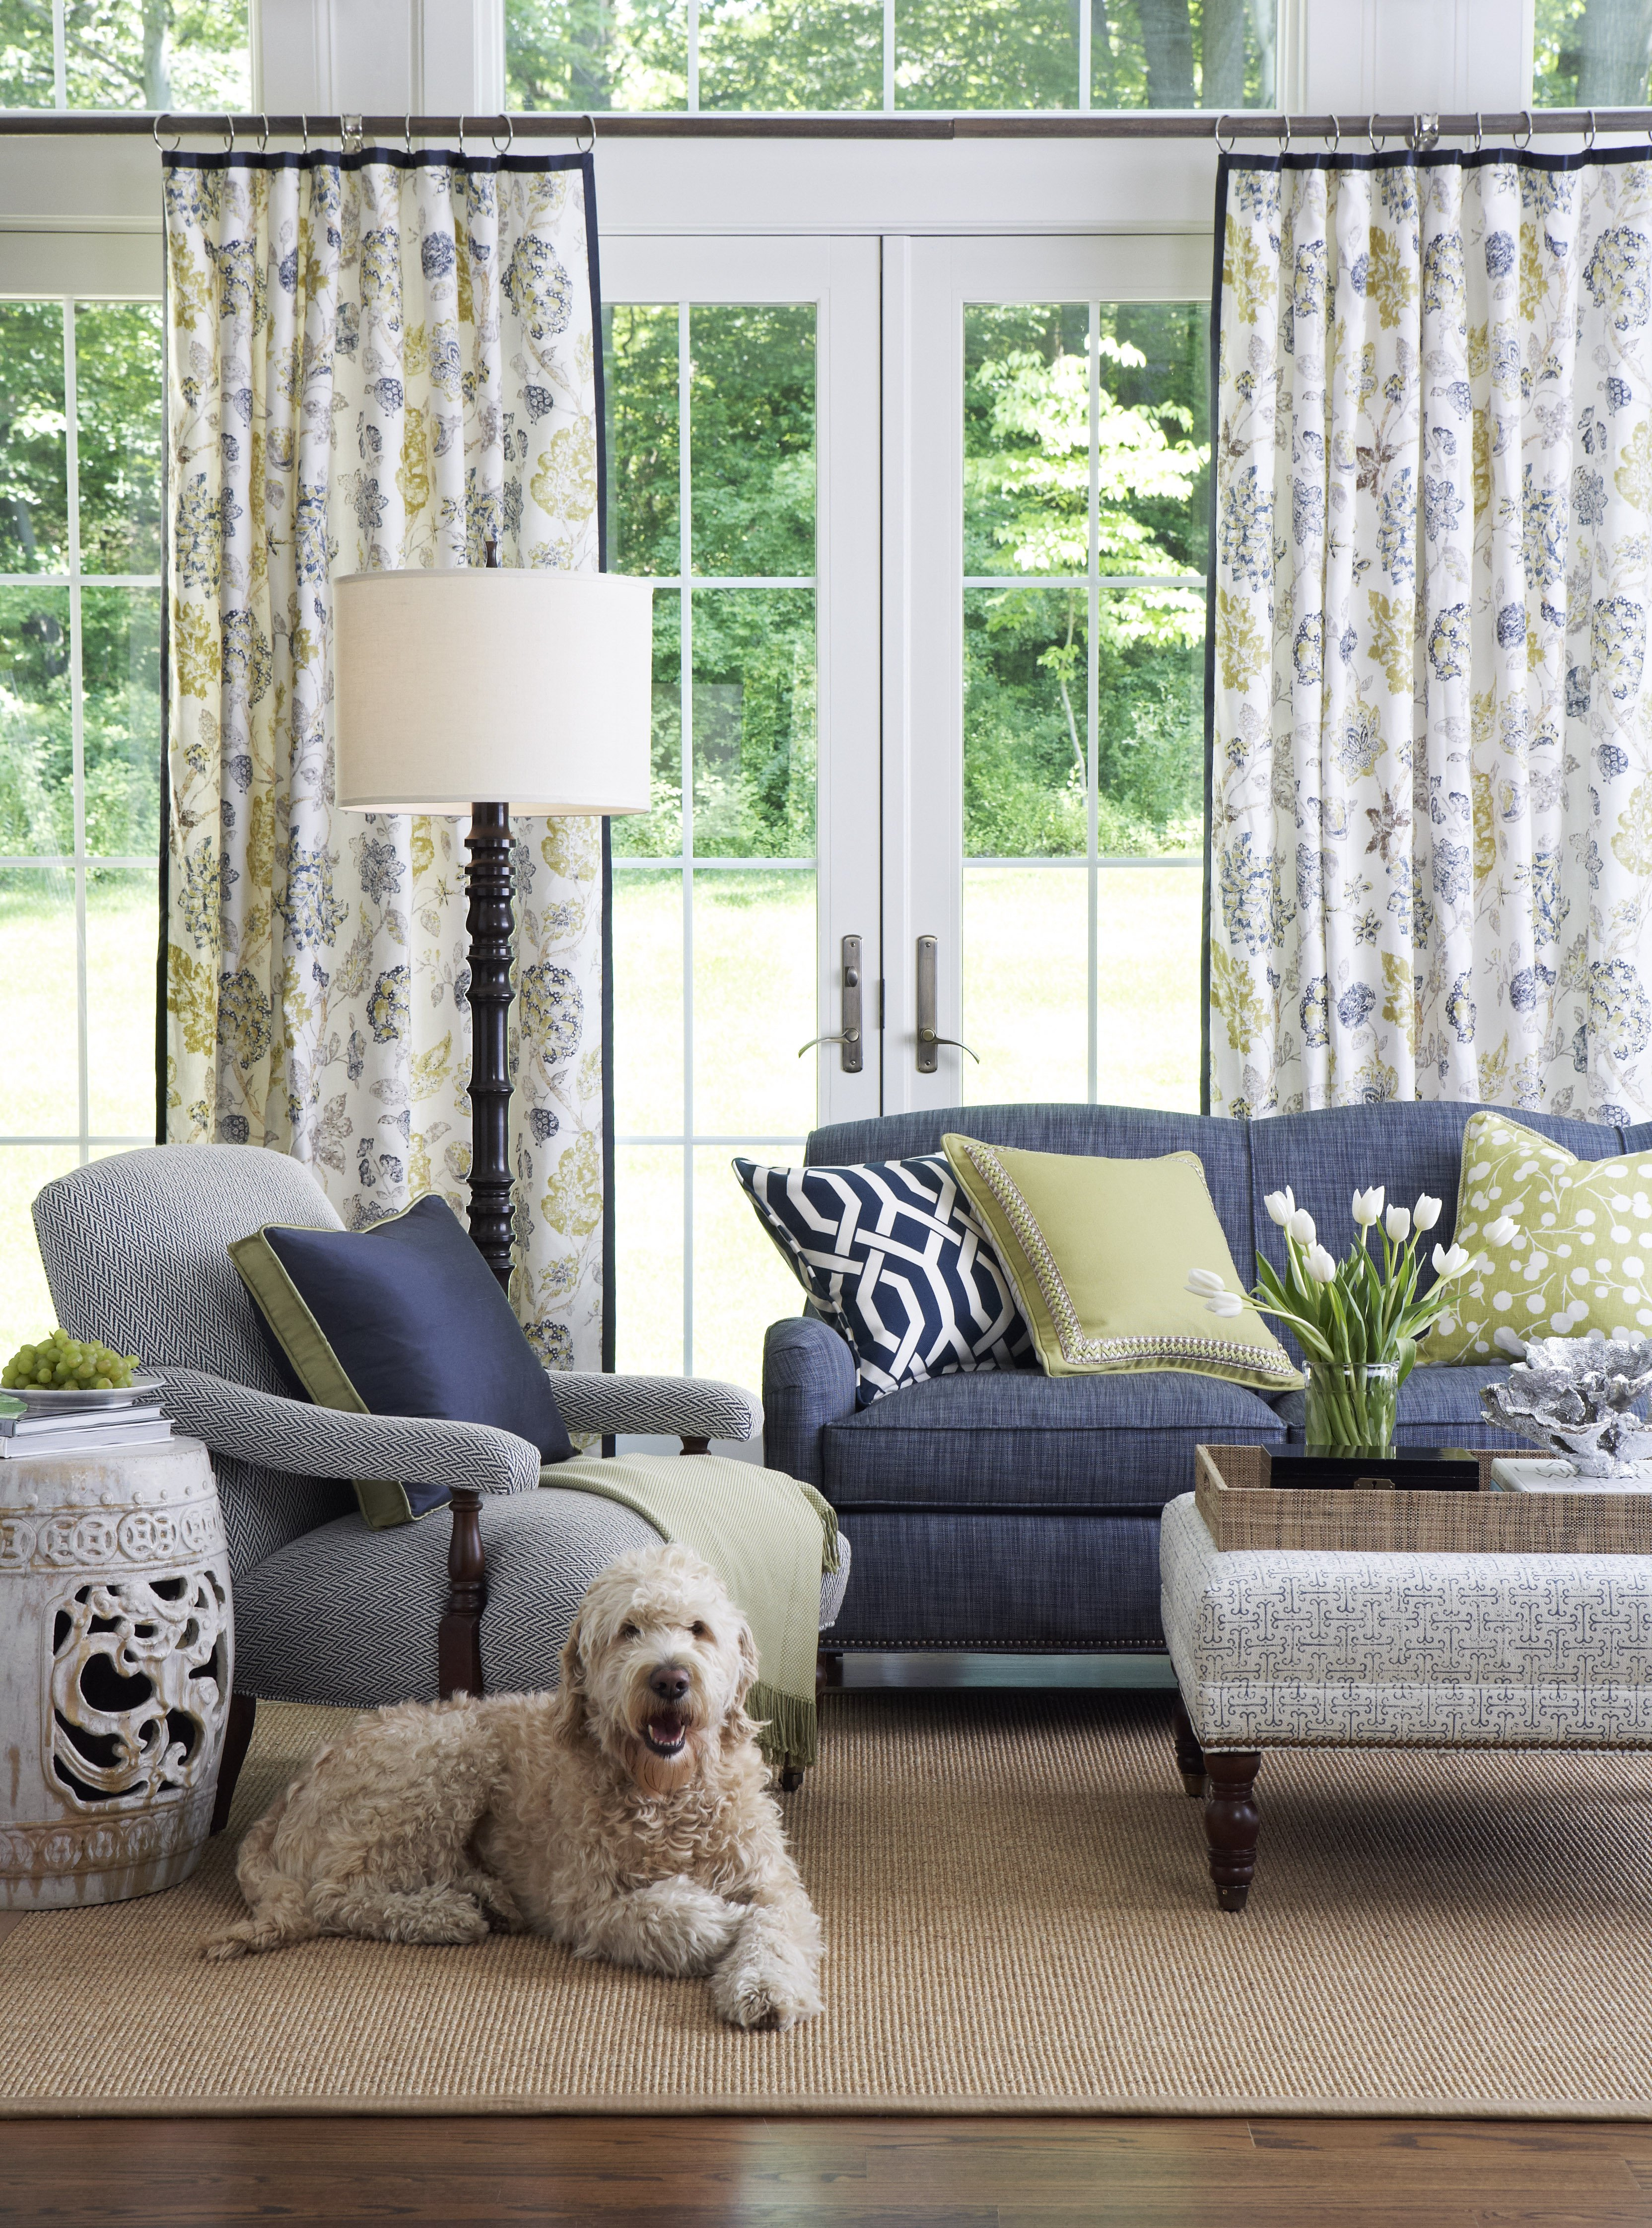 Curtains for Small Bedroom Windows Luxury Calico Window Treatment Scale and Proportion